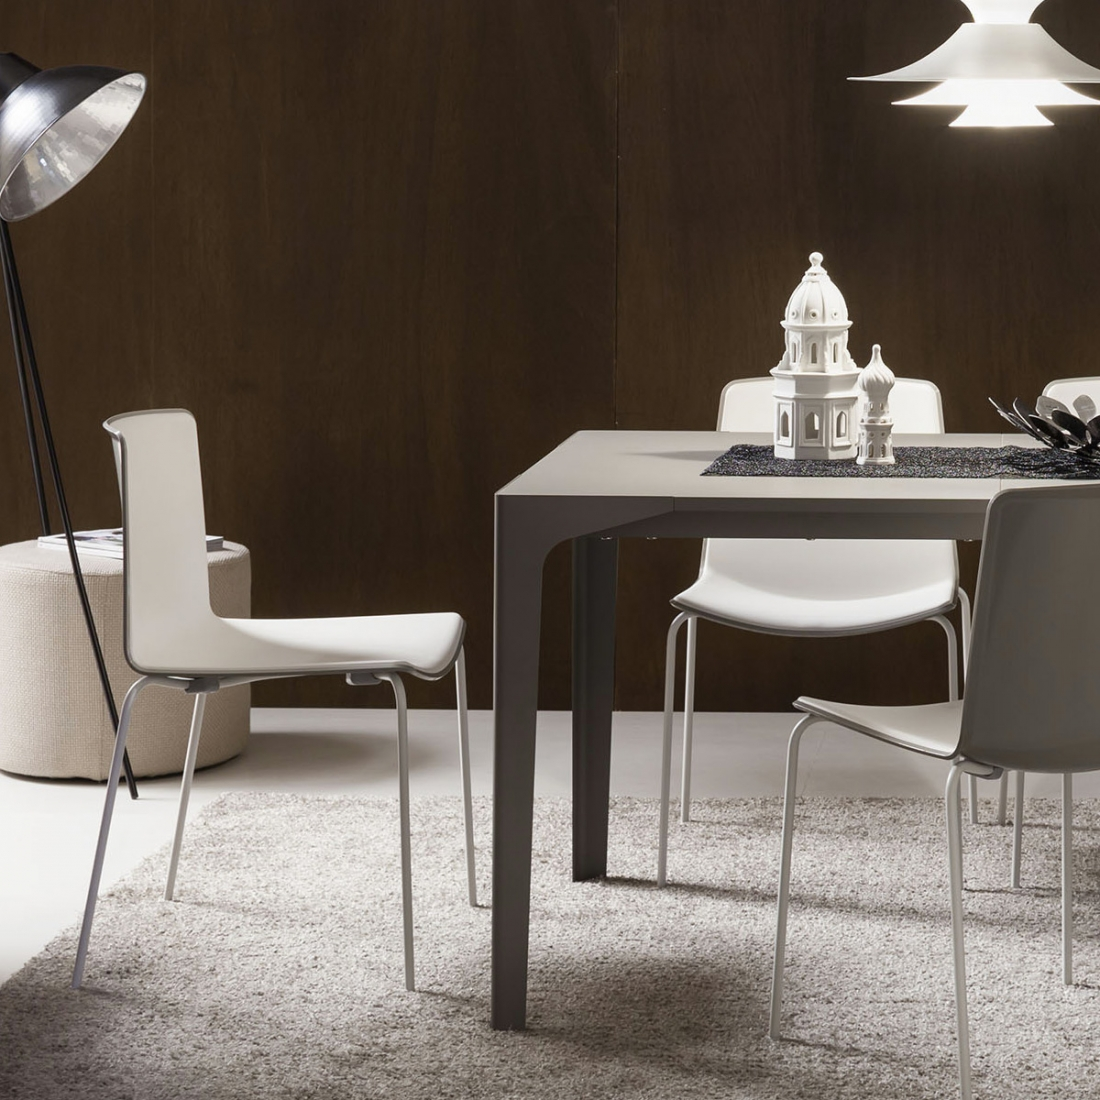 Table salle a manger avec rallonge zendart design for Table salle a manger extensible design